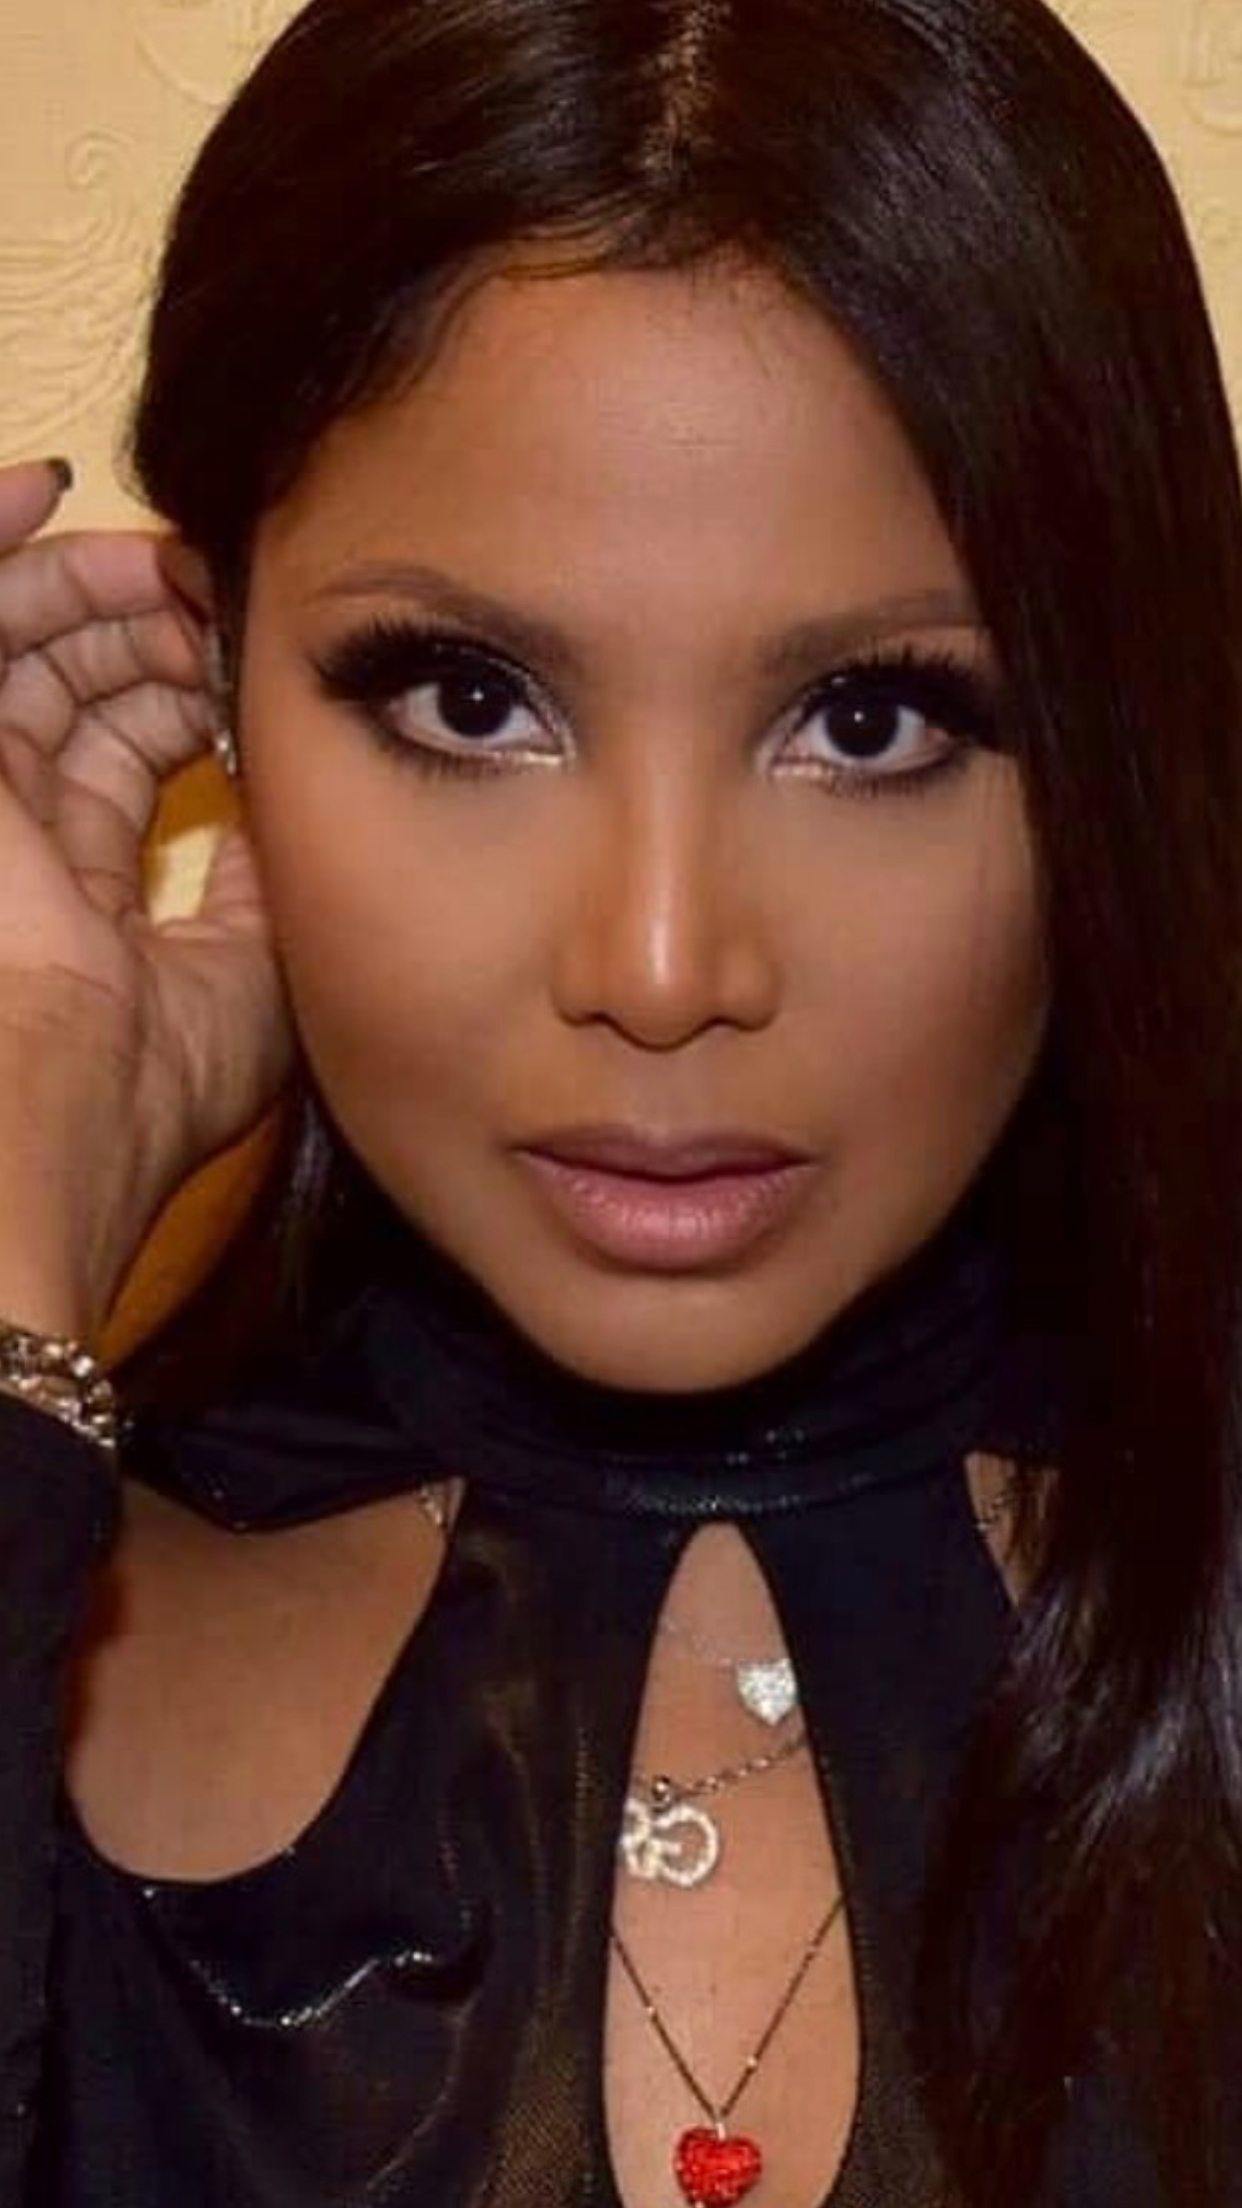 Celebrites Toni Braxton nude (63 foto and video), Ass, Cleavage, Instagram, cleavage 2019